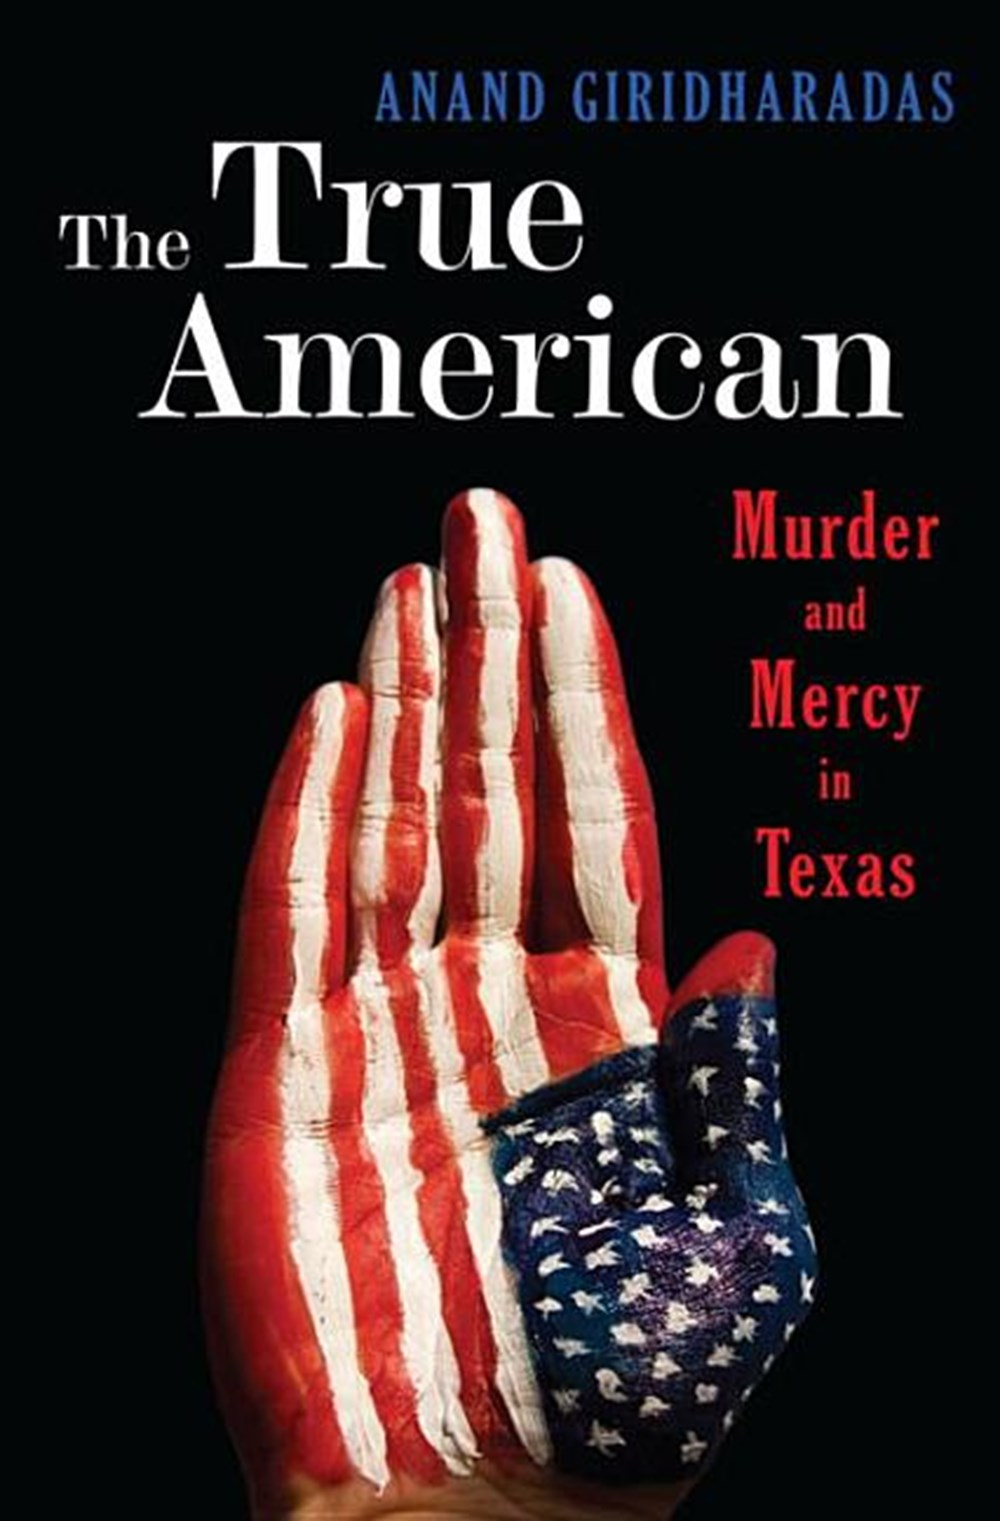 True American Murder and Mercy in Texas